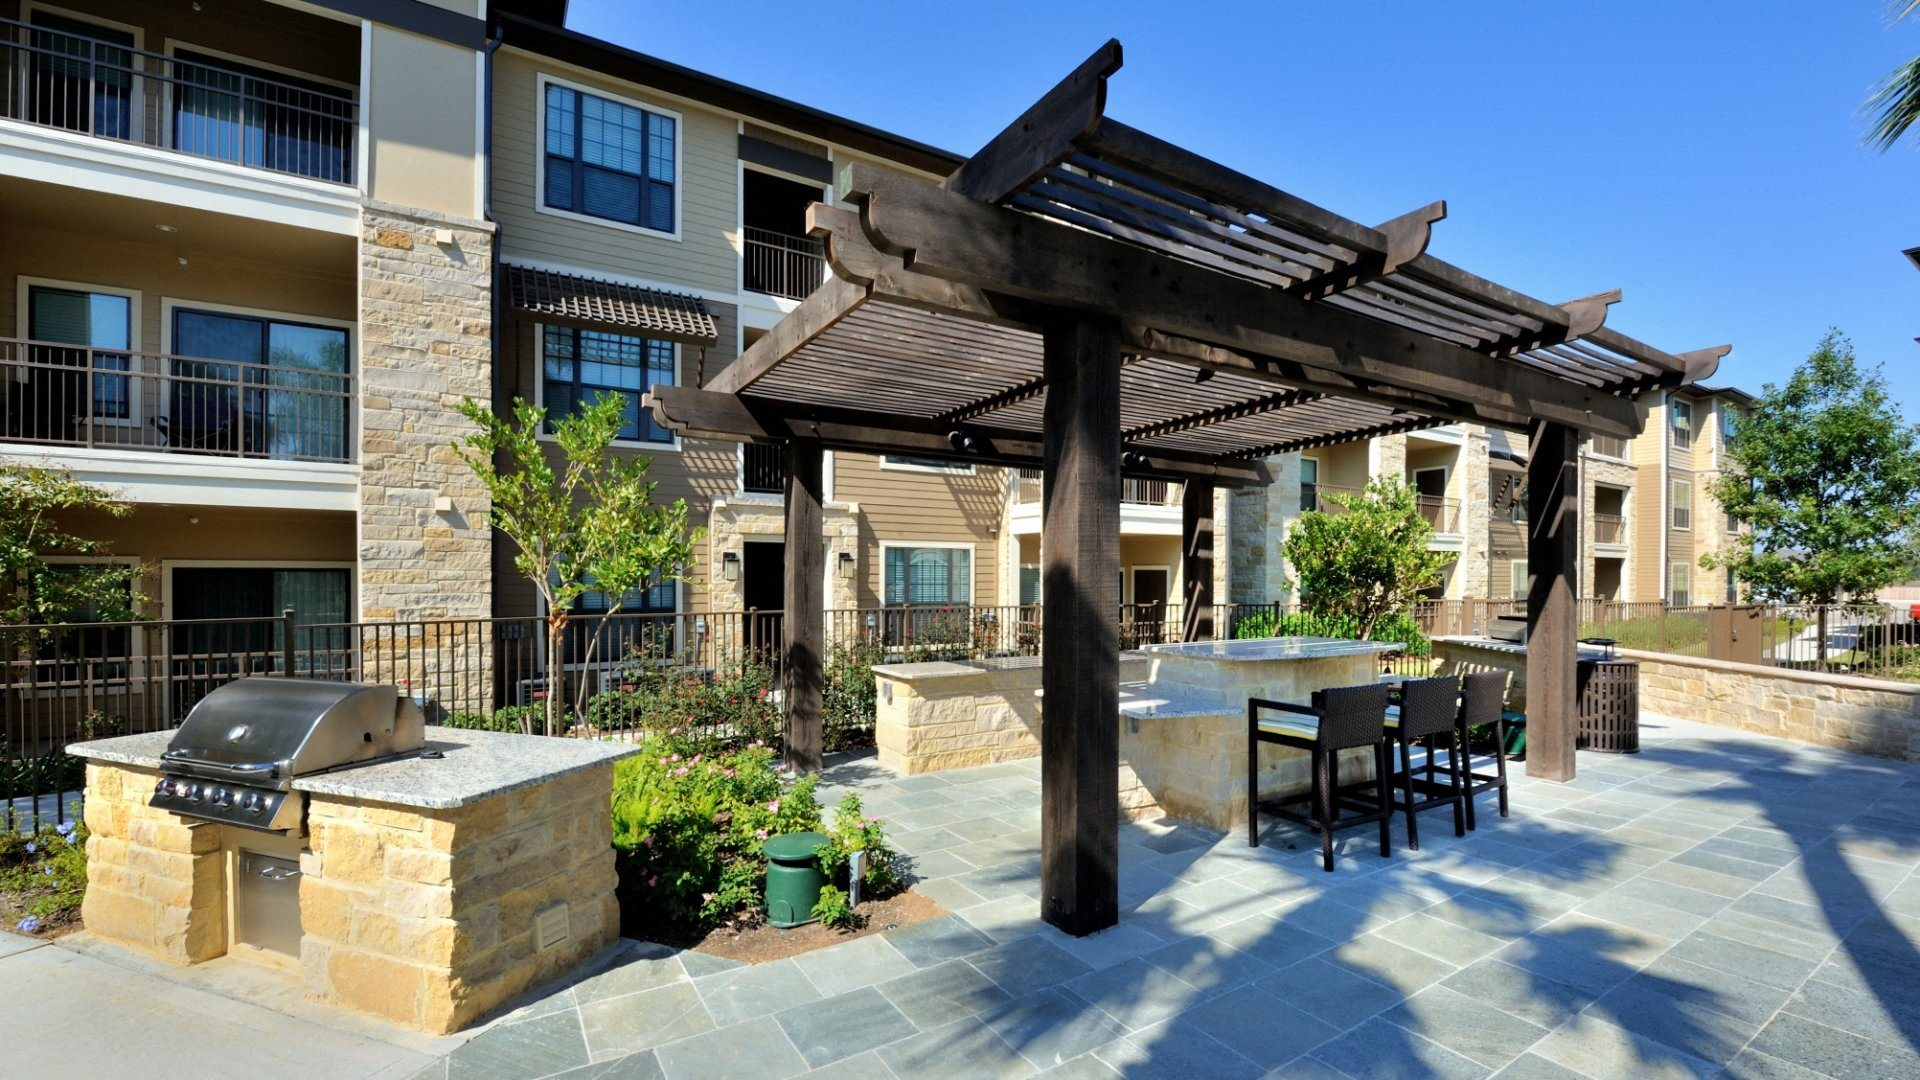 Grilling Station At Broadstone Park West Apartments Houston